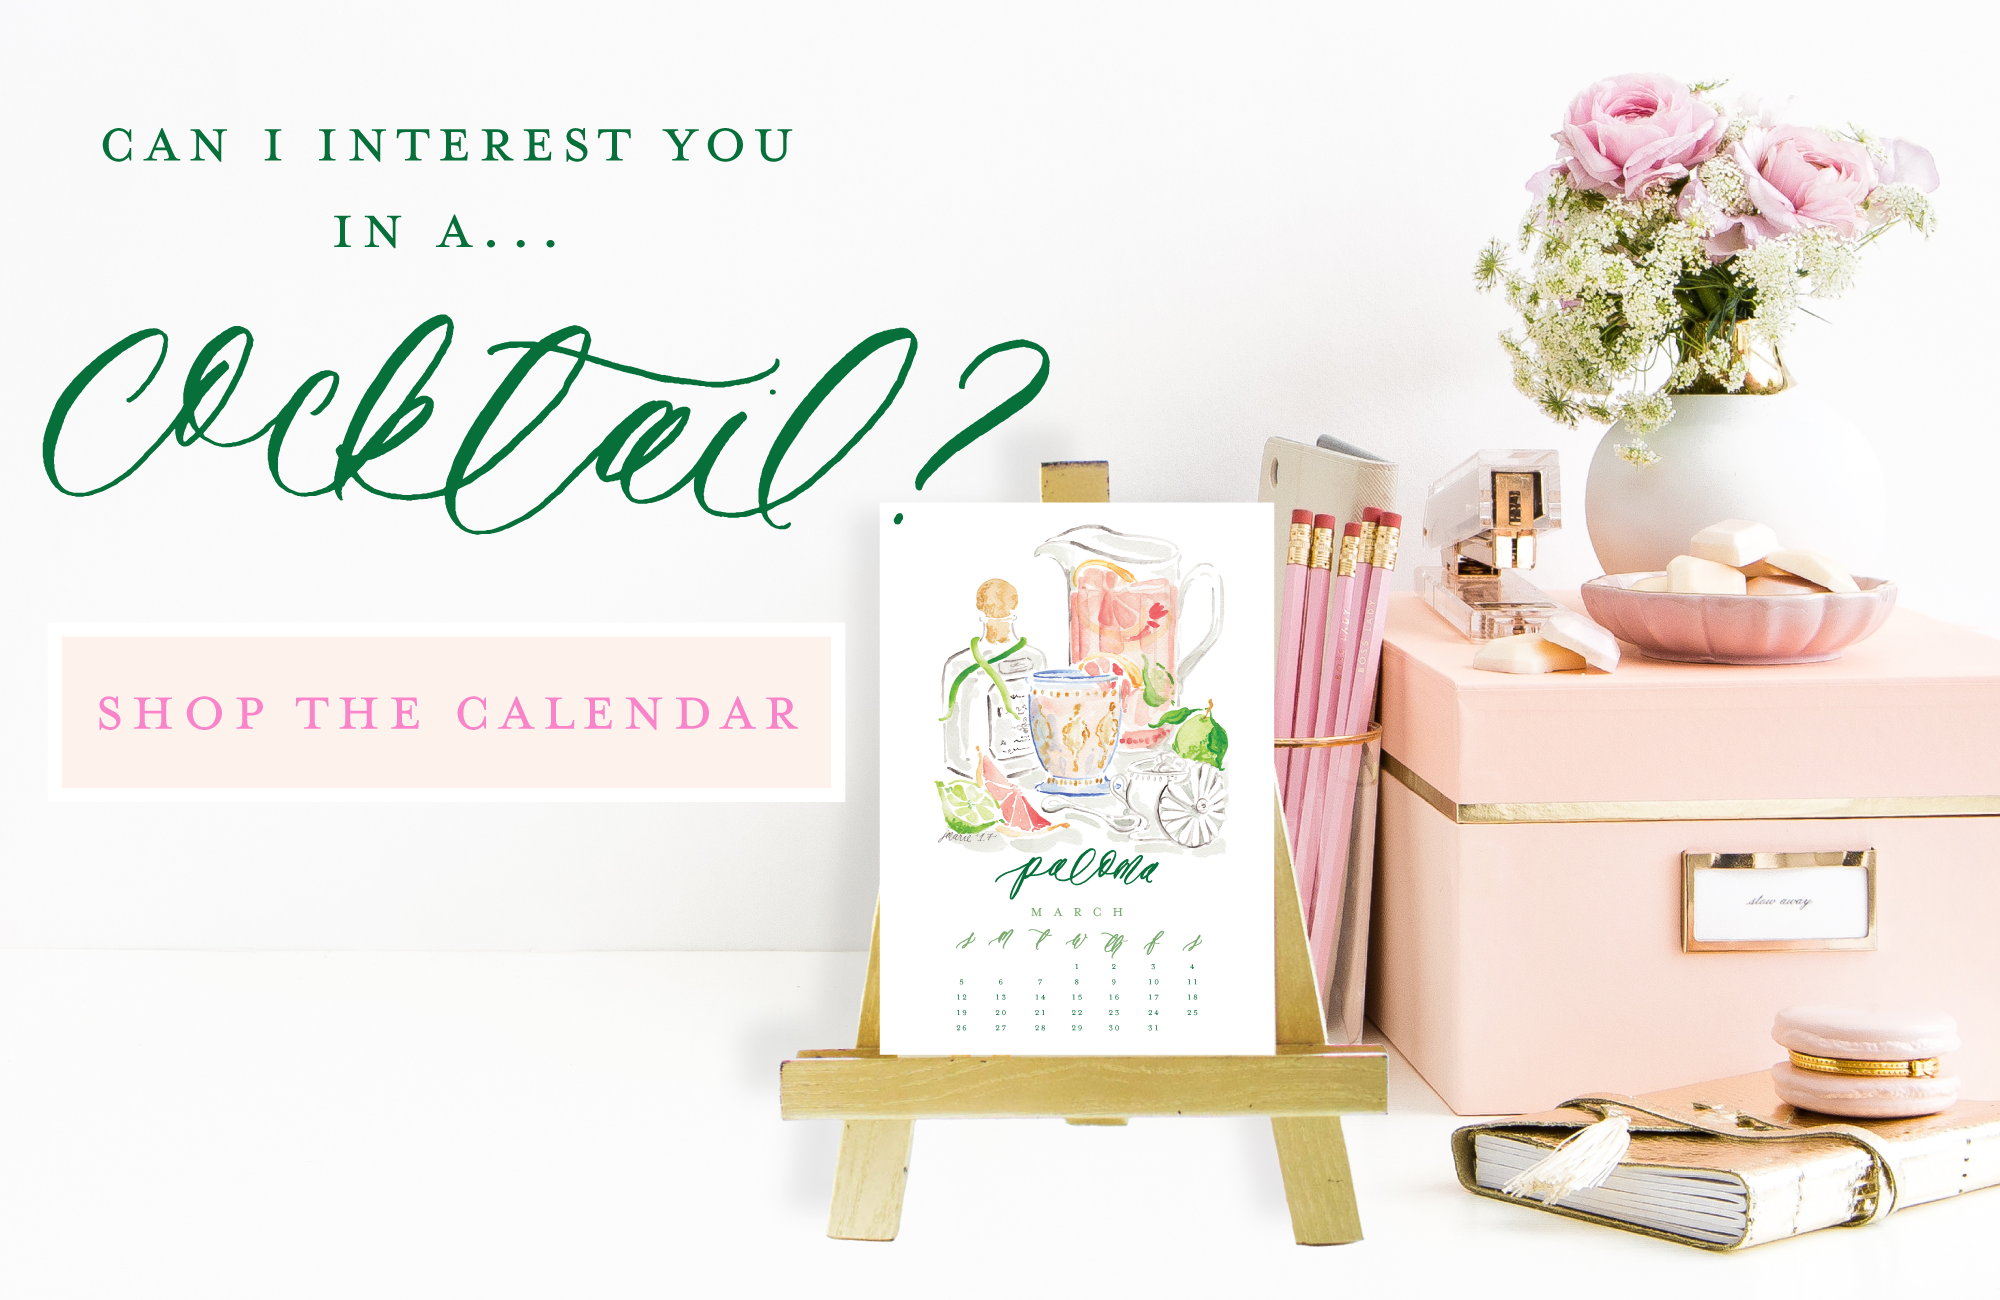 2017 Cocktail Calendar by Simply Jessica Marie | Watercolor Cocktail Illustrations | SC Stockshop